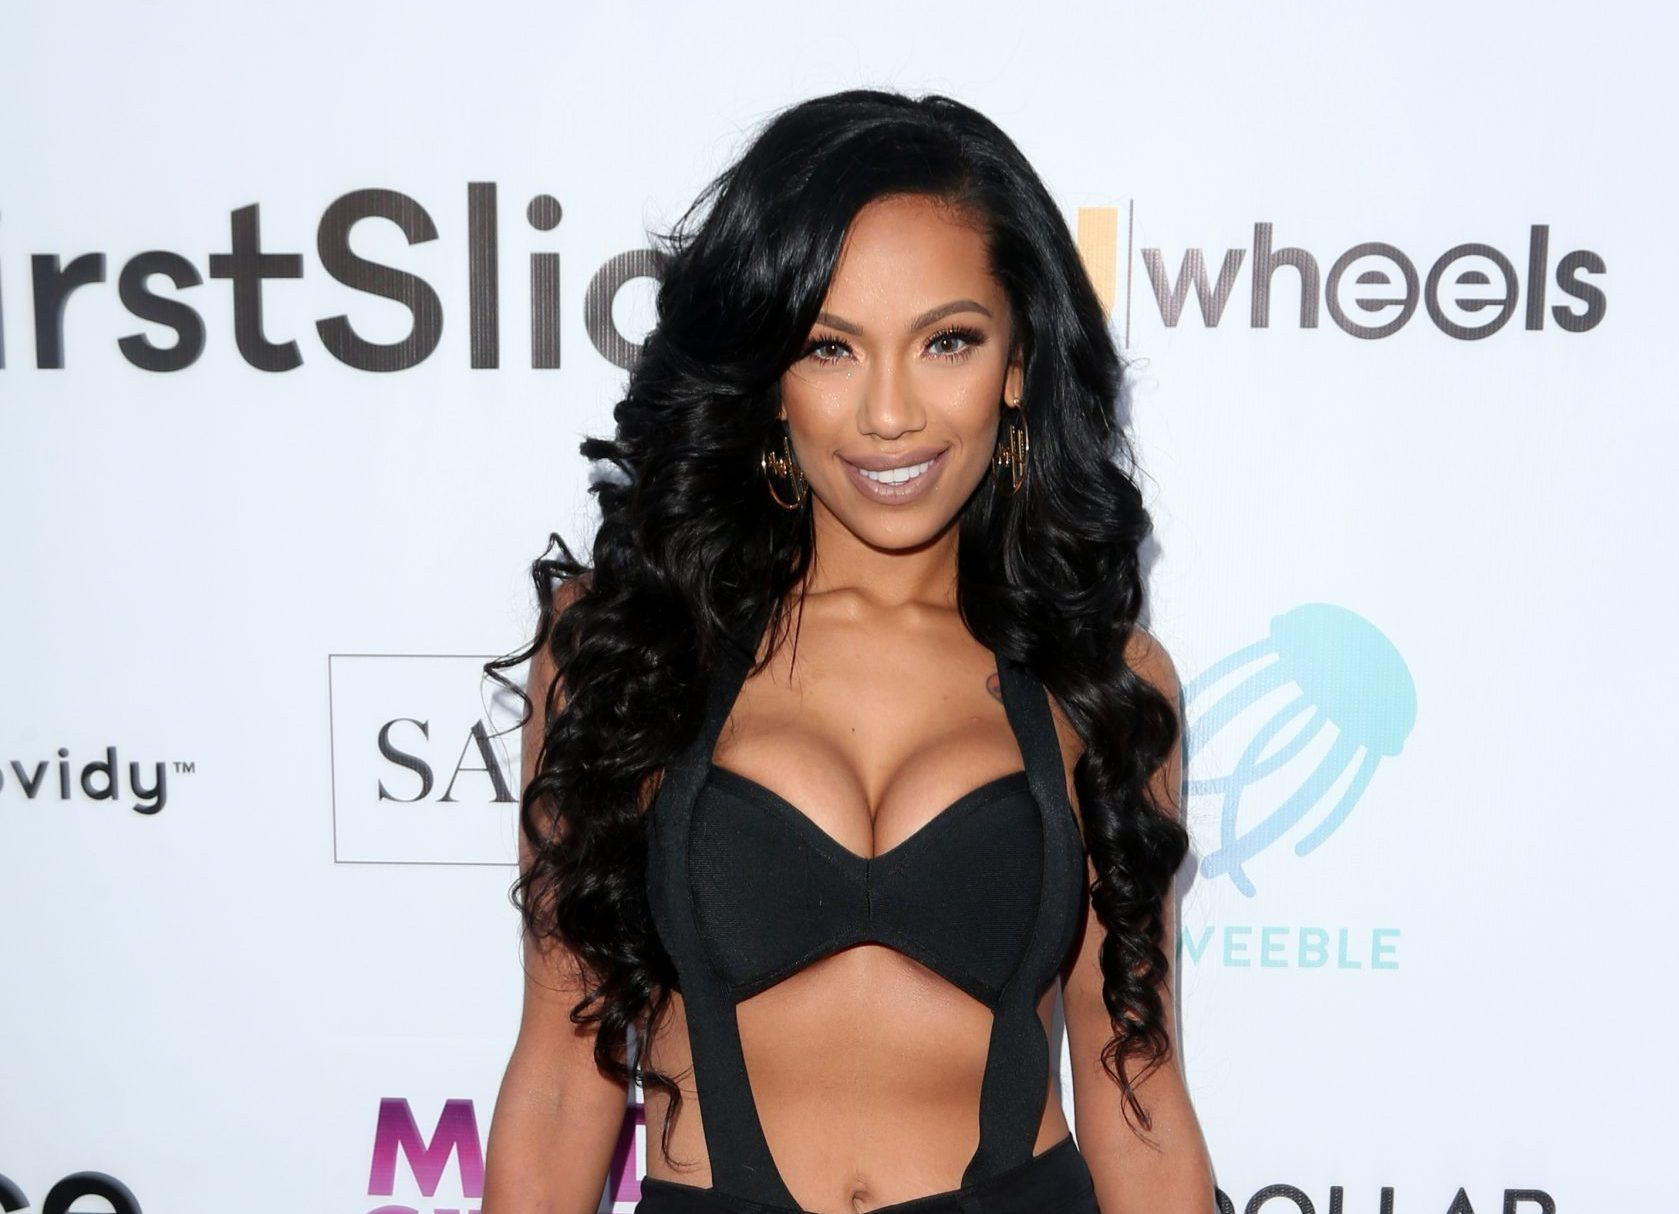 Erica Mena Blows Fans' Minds With A Massive Cleavage – See Her Daring Outfit